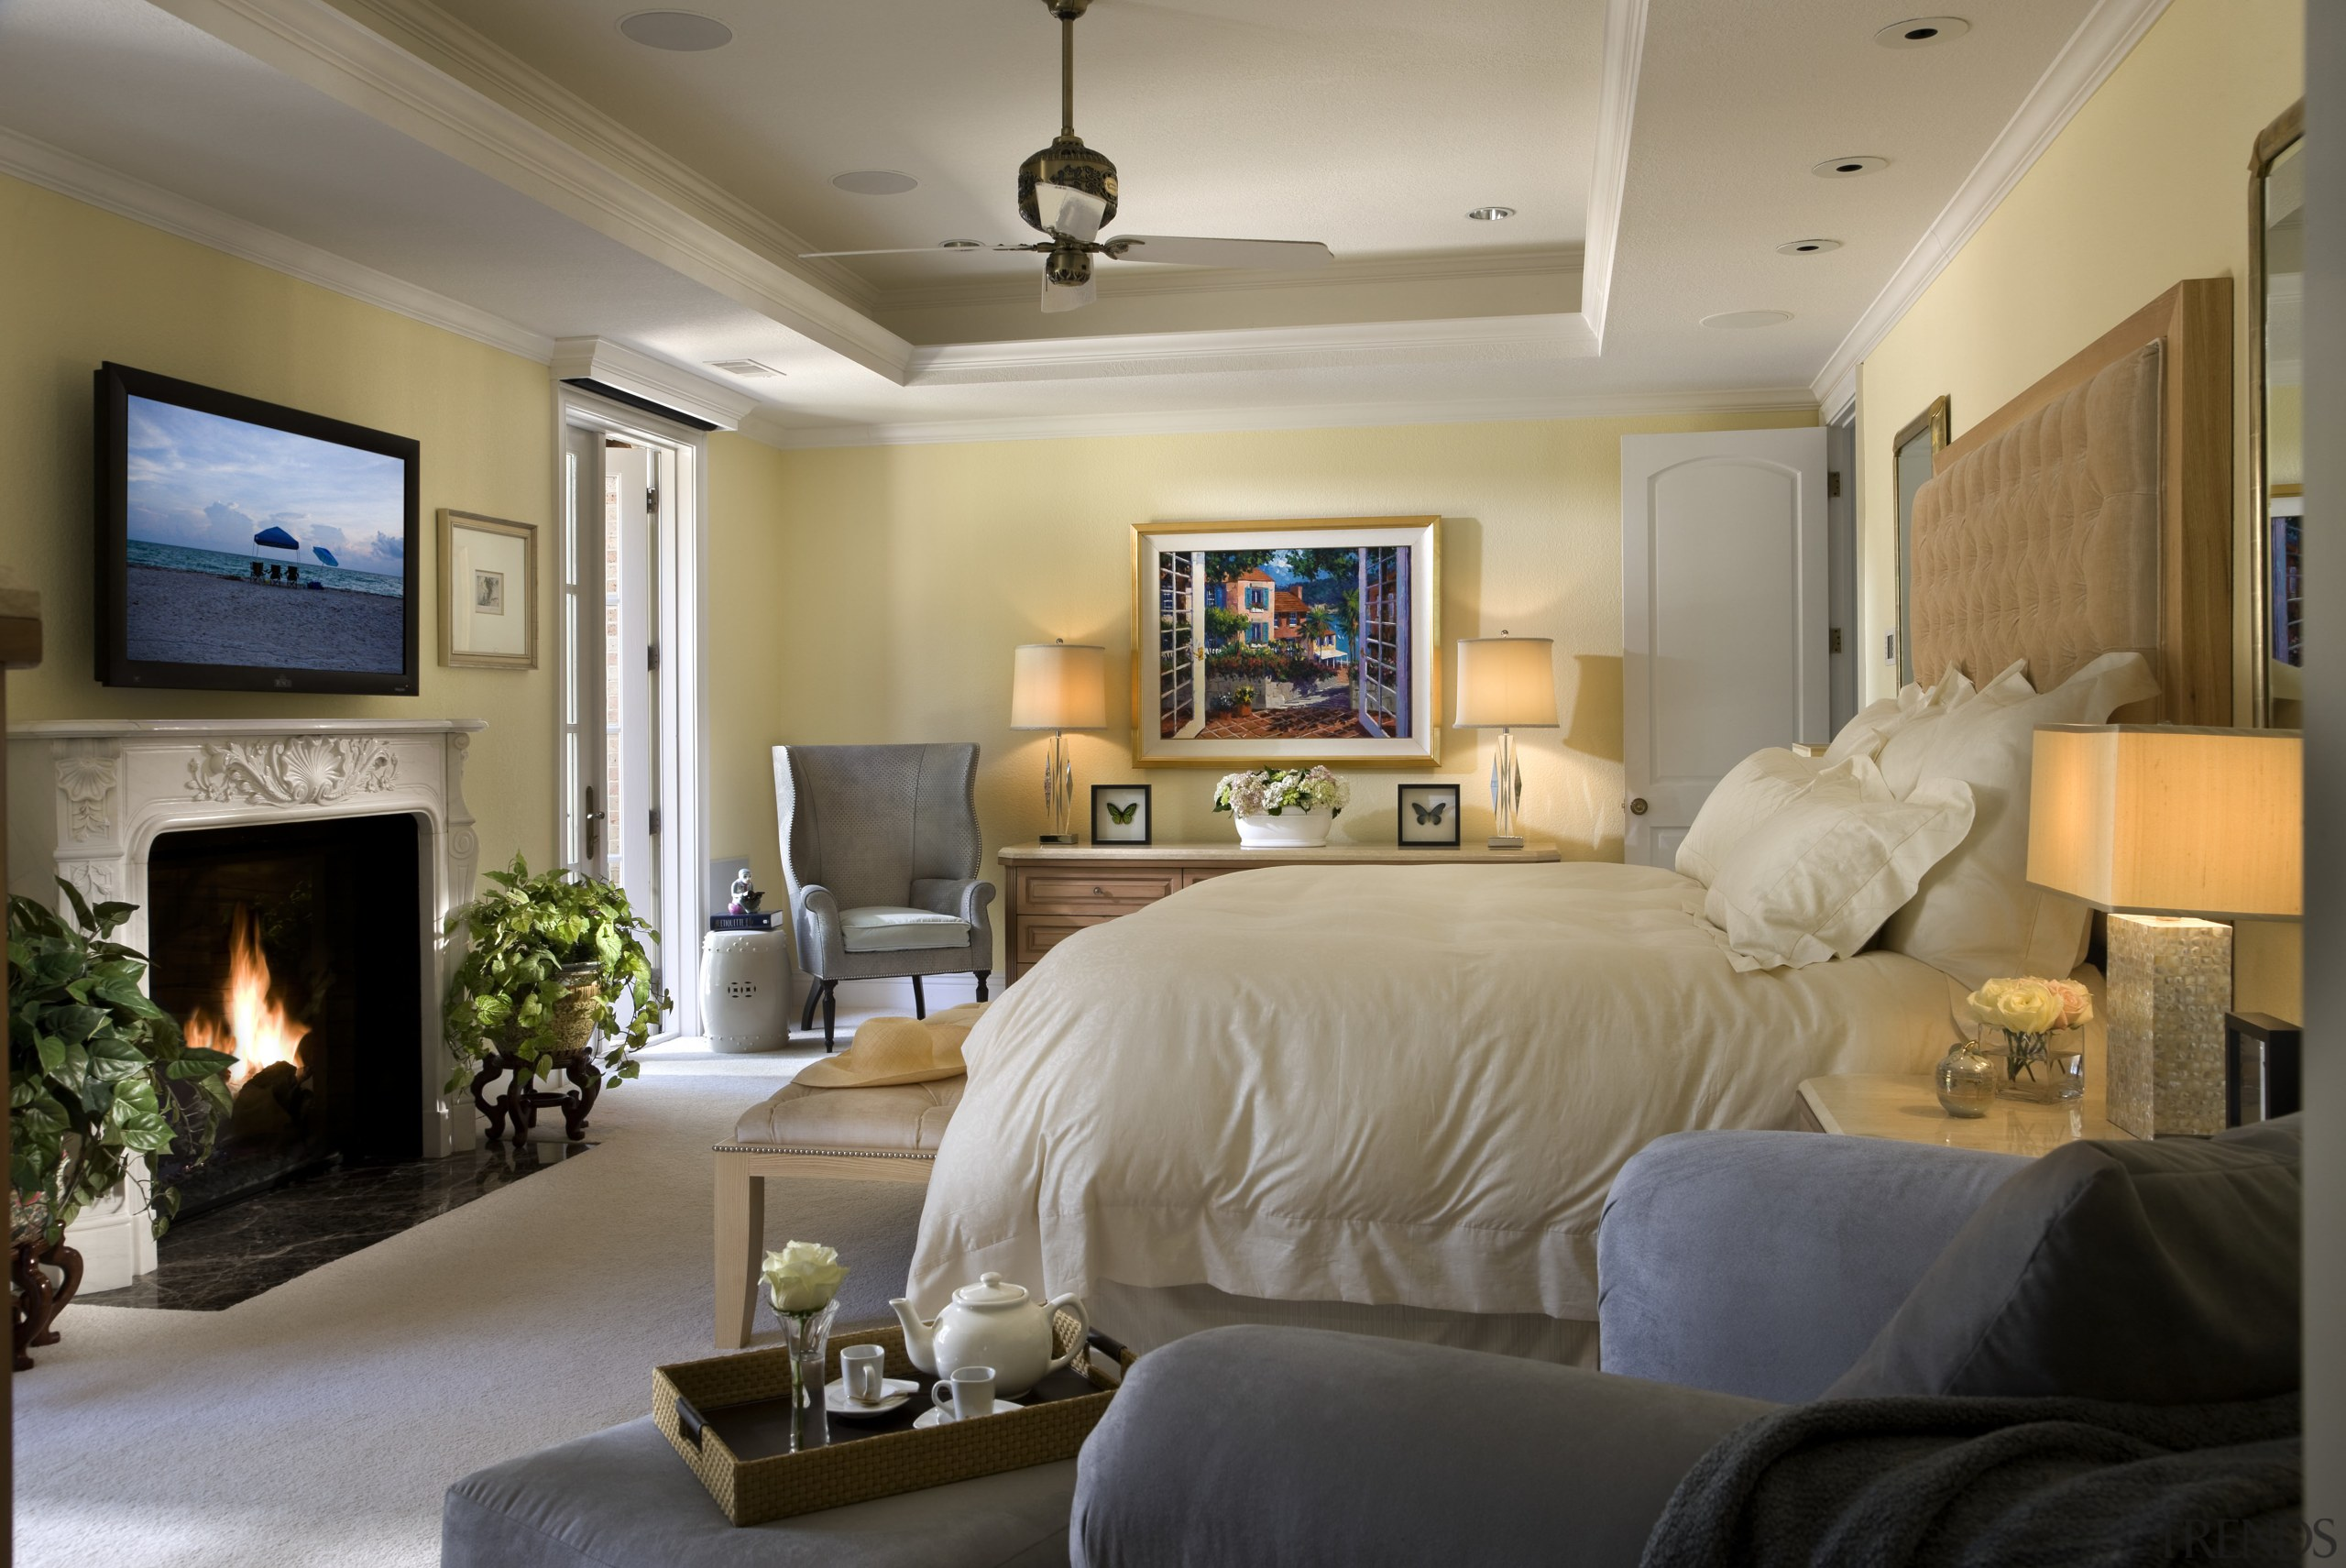 Master bedroom overviewing the furniture & fireplace ceiling, home, interior design, living room, real estate, room, wall, gray